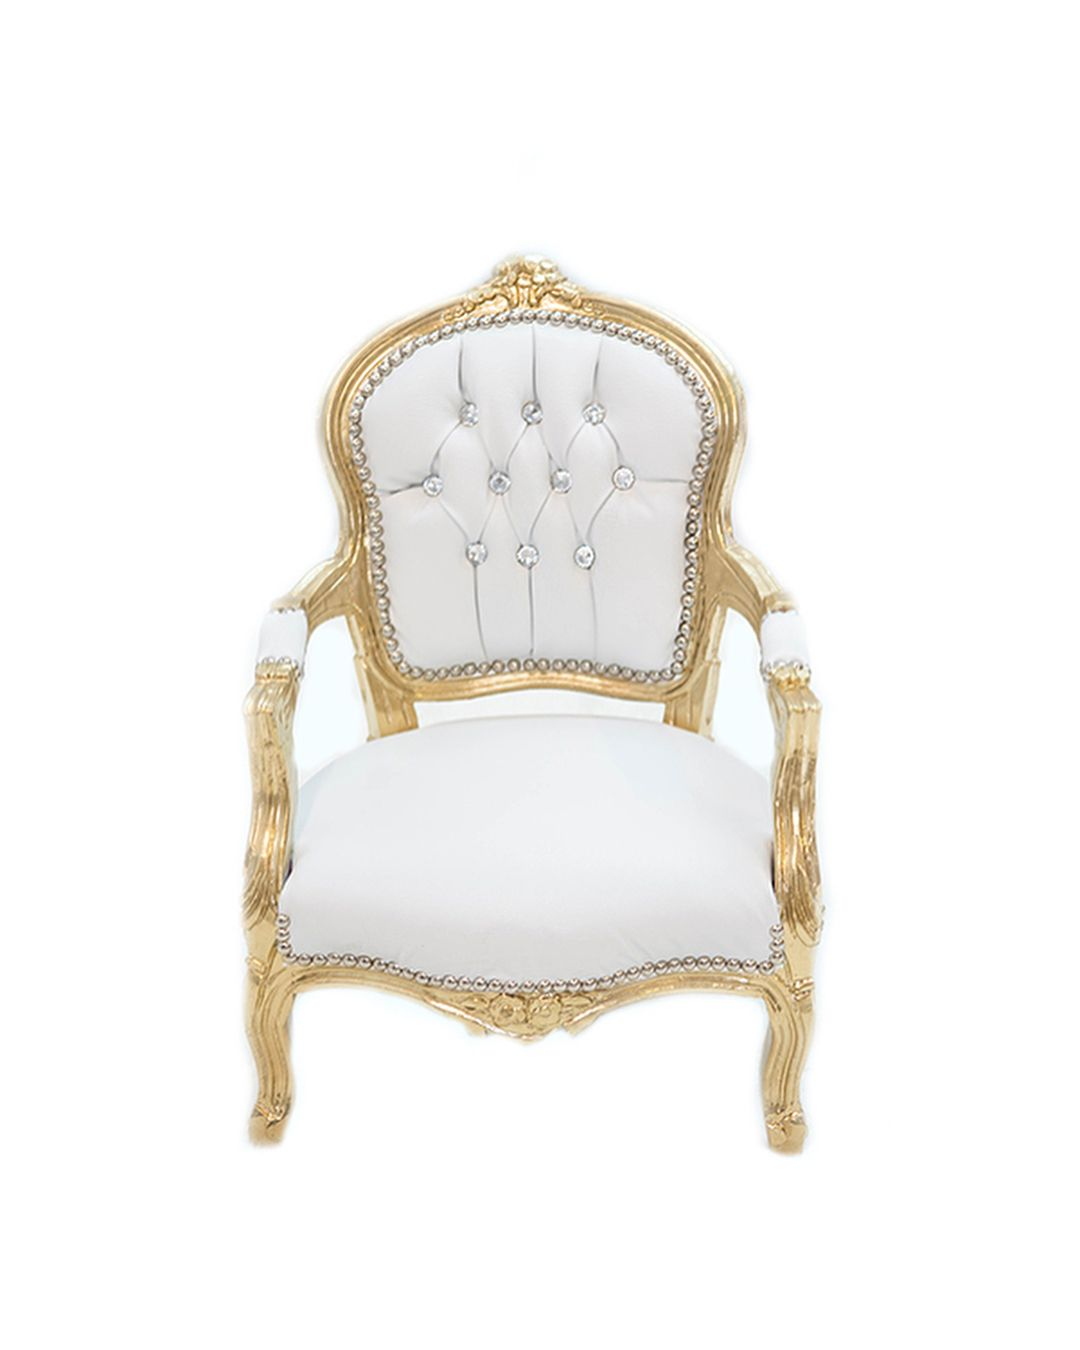 baby throne chair wholesale banquet chairs birthdayparty decoration firstbirthday events rent4parties